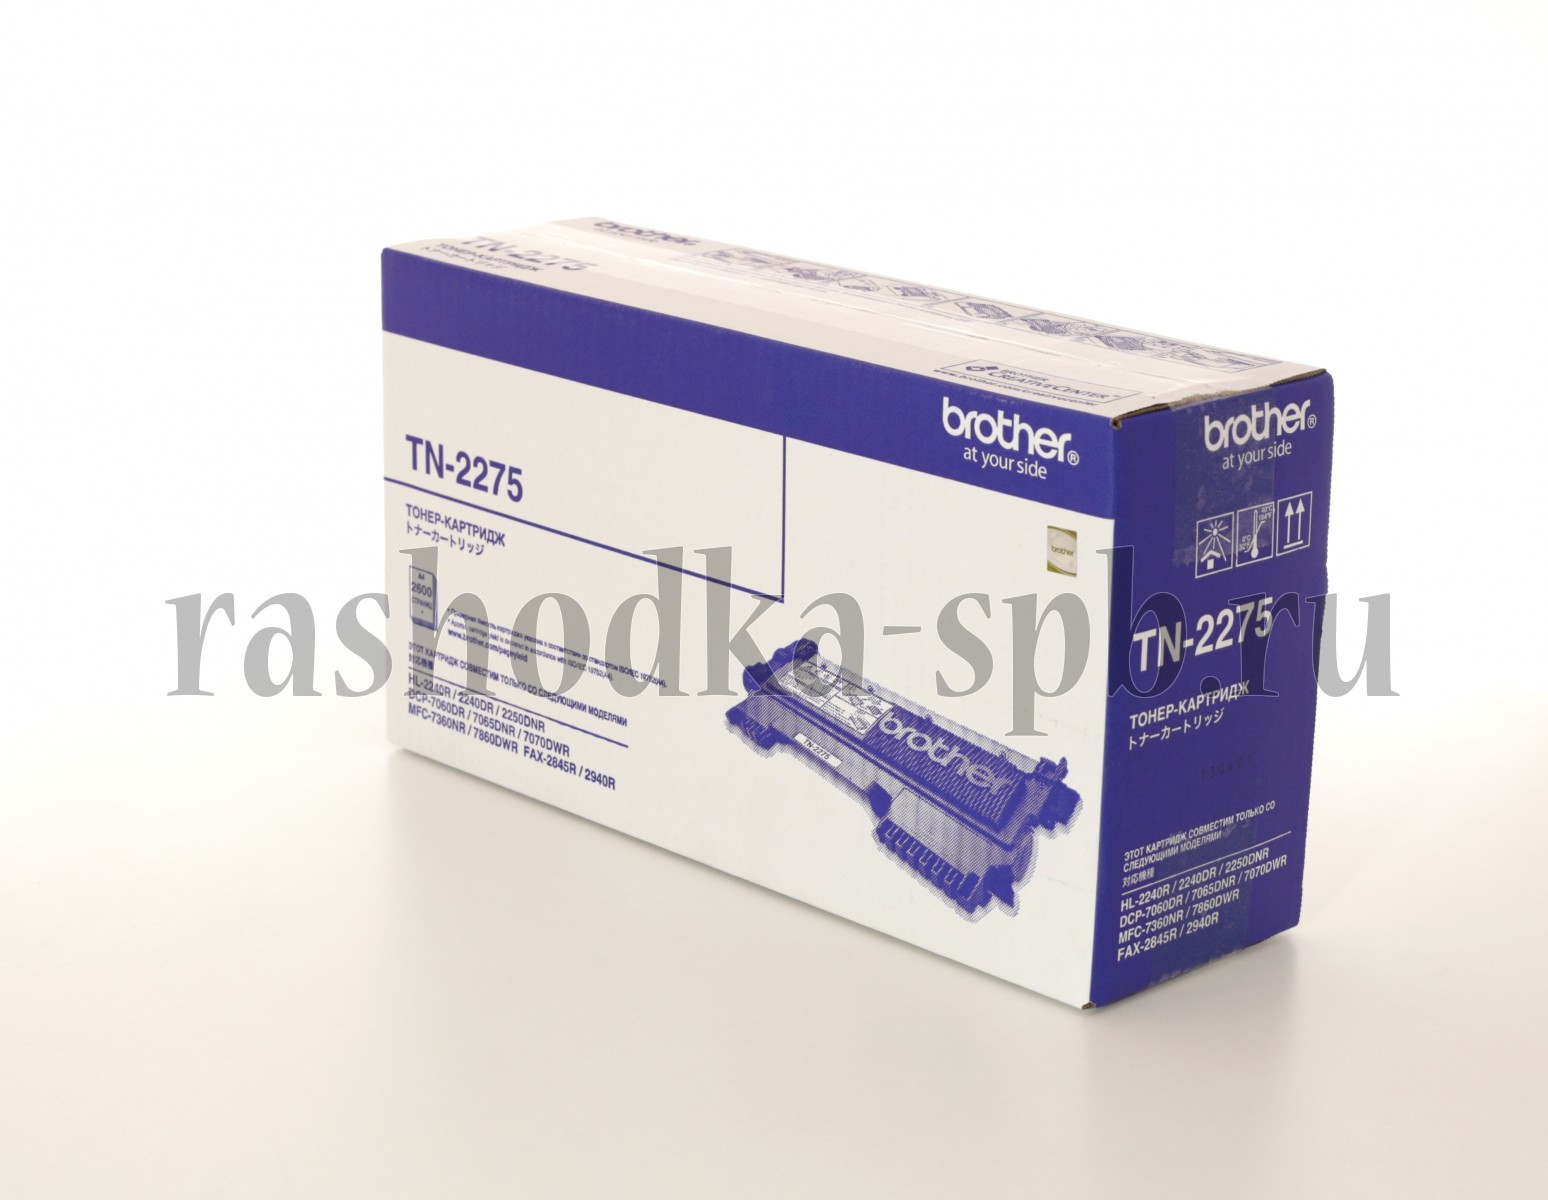 toner-kartridzh-tn-2275-dlya-brother